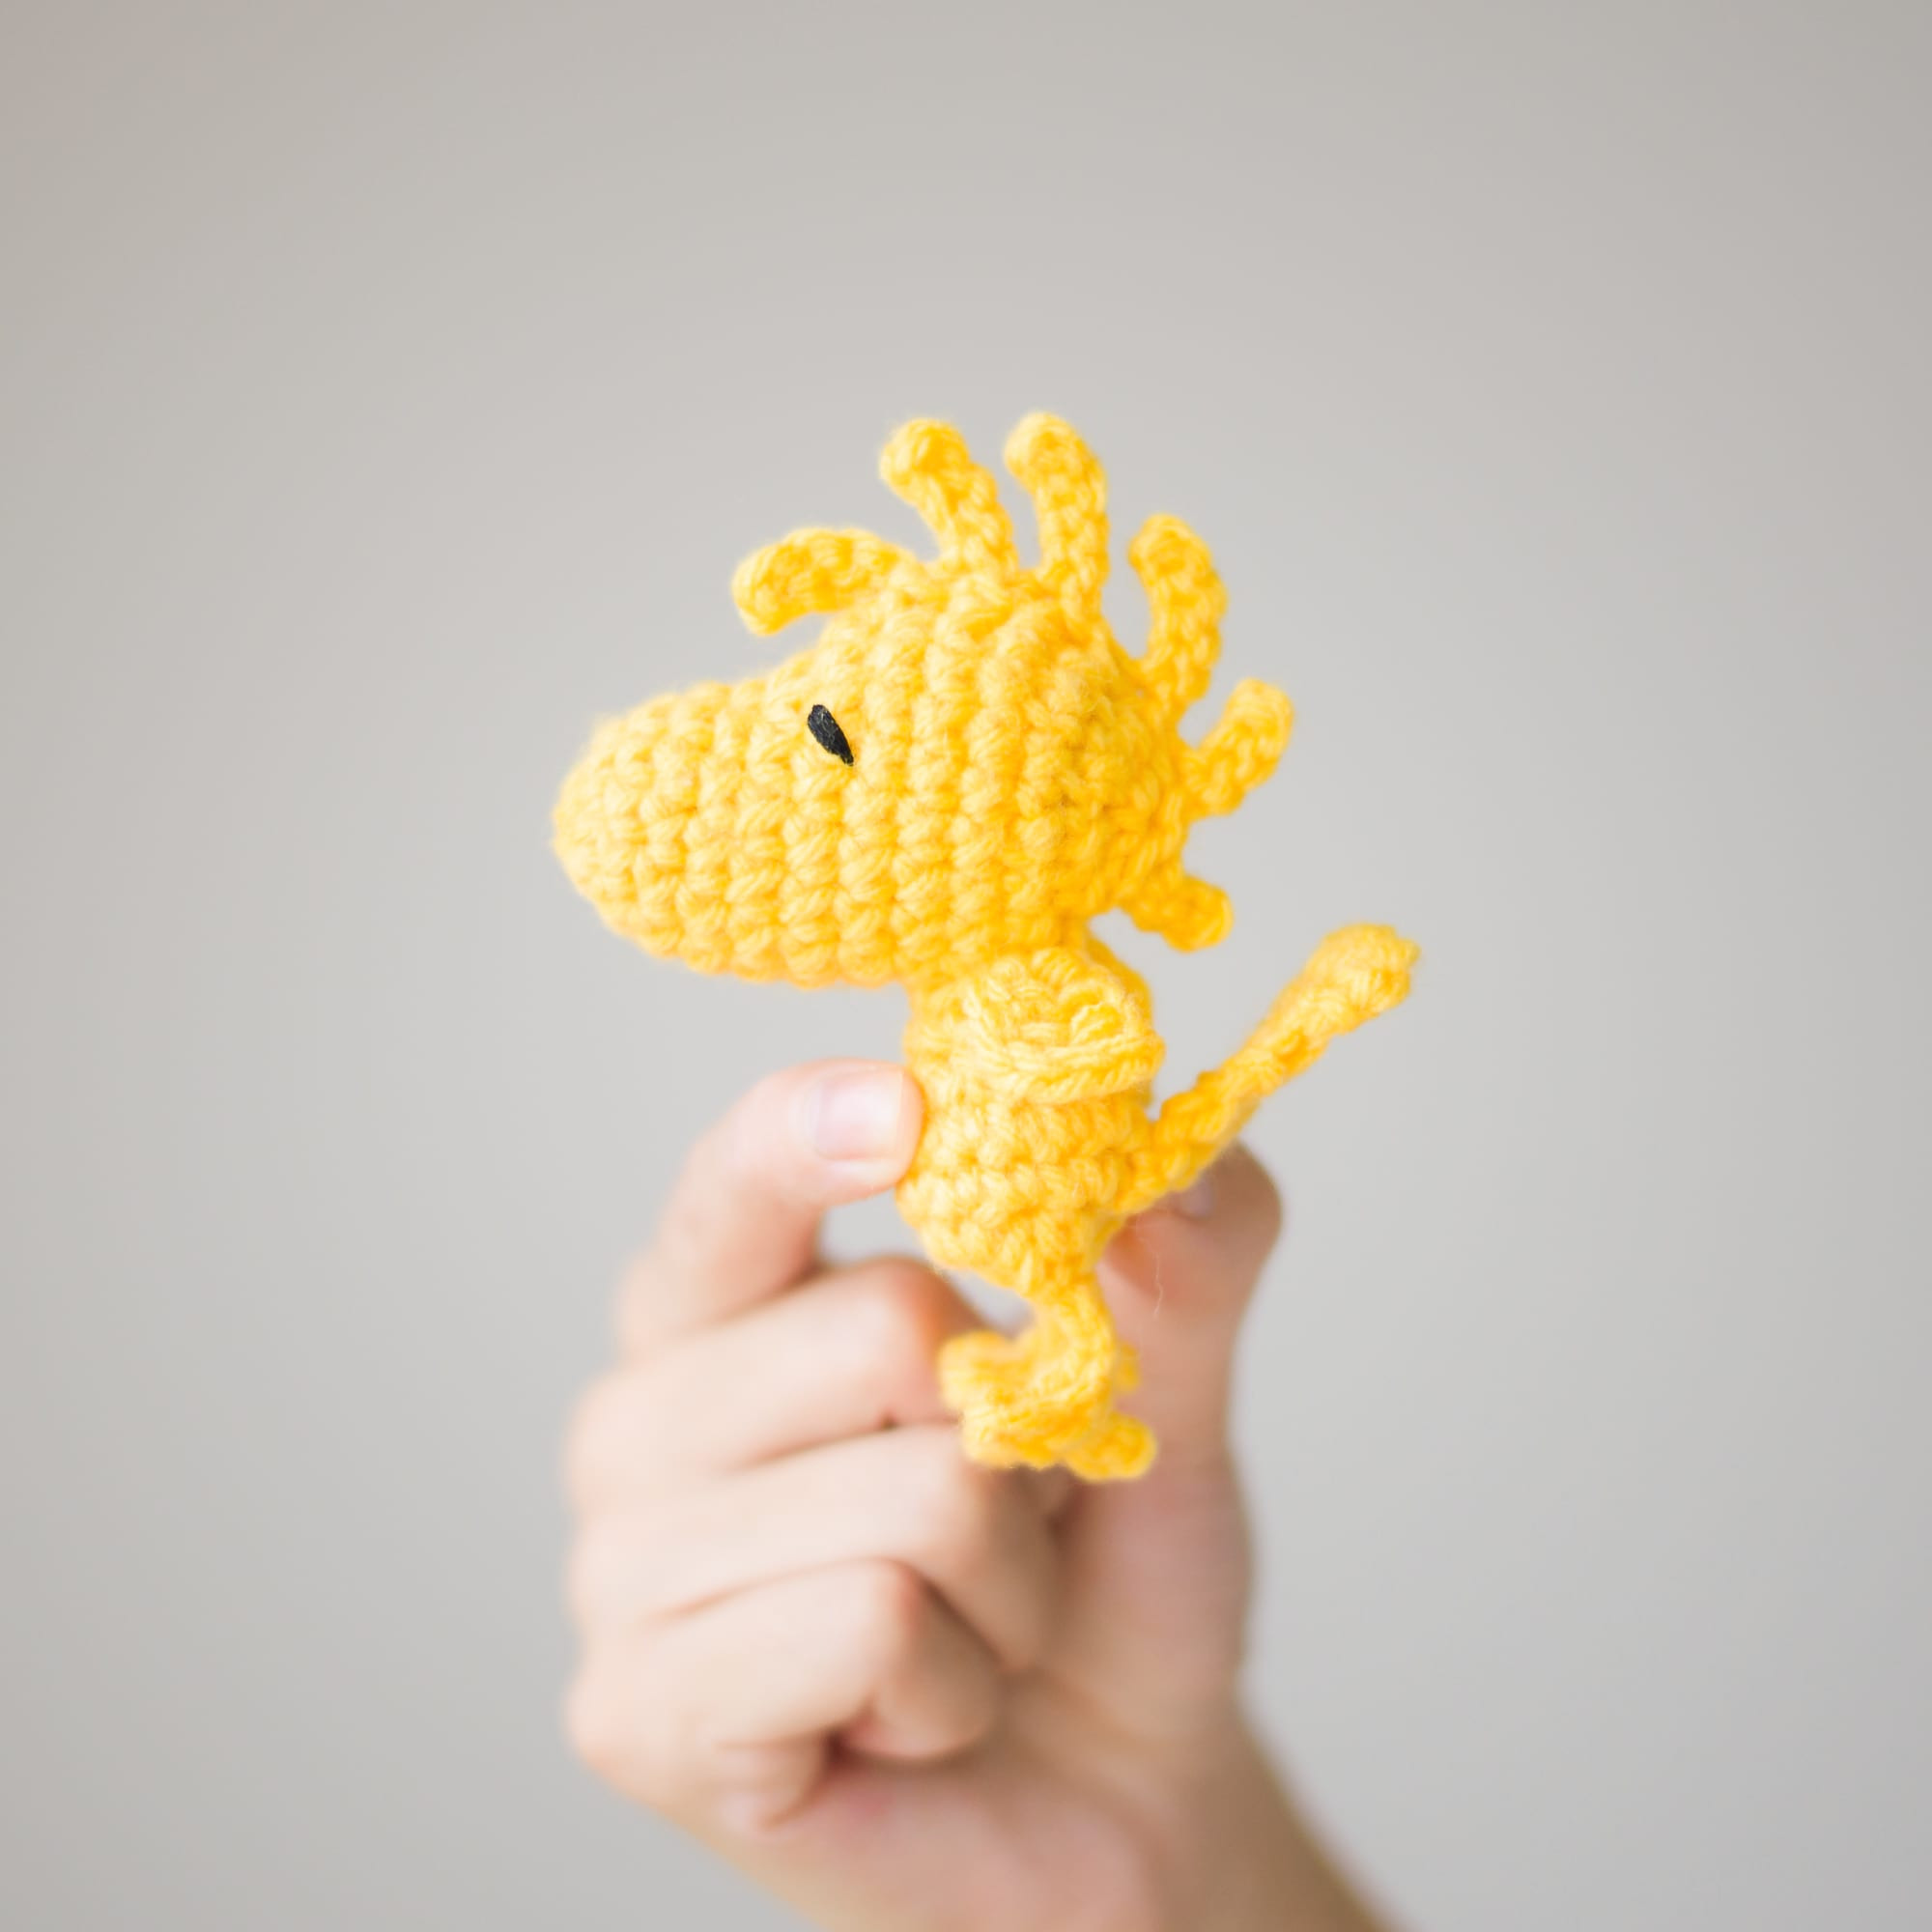 Woodstock Peanuts Crochet Kit Review & GIVEAWAY All